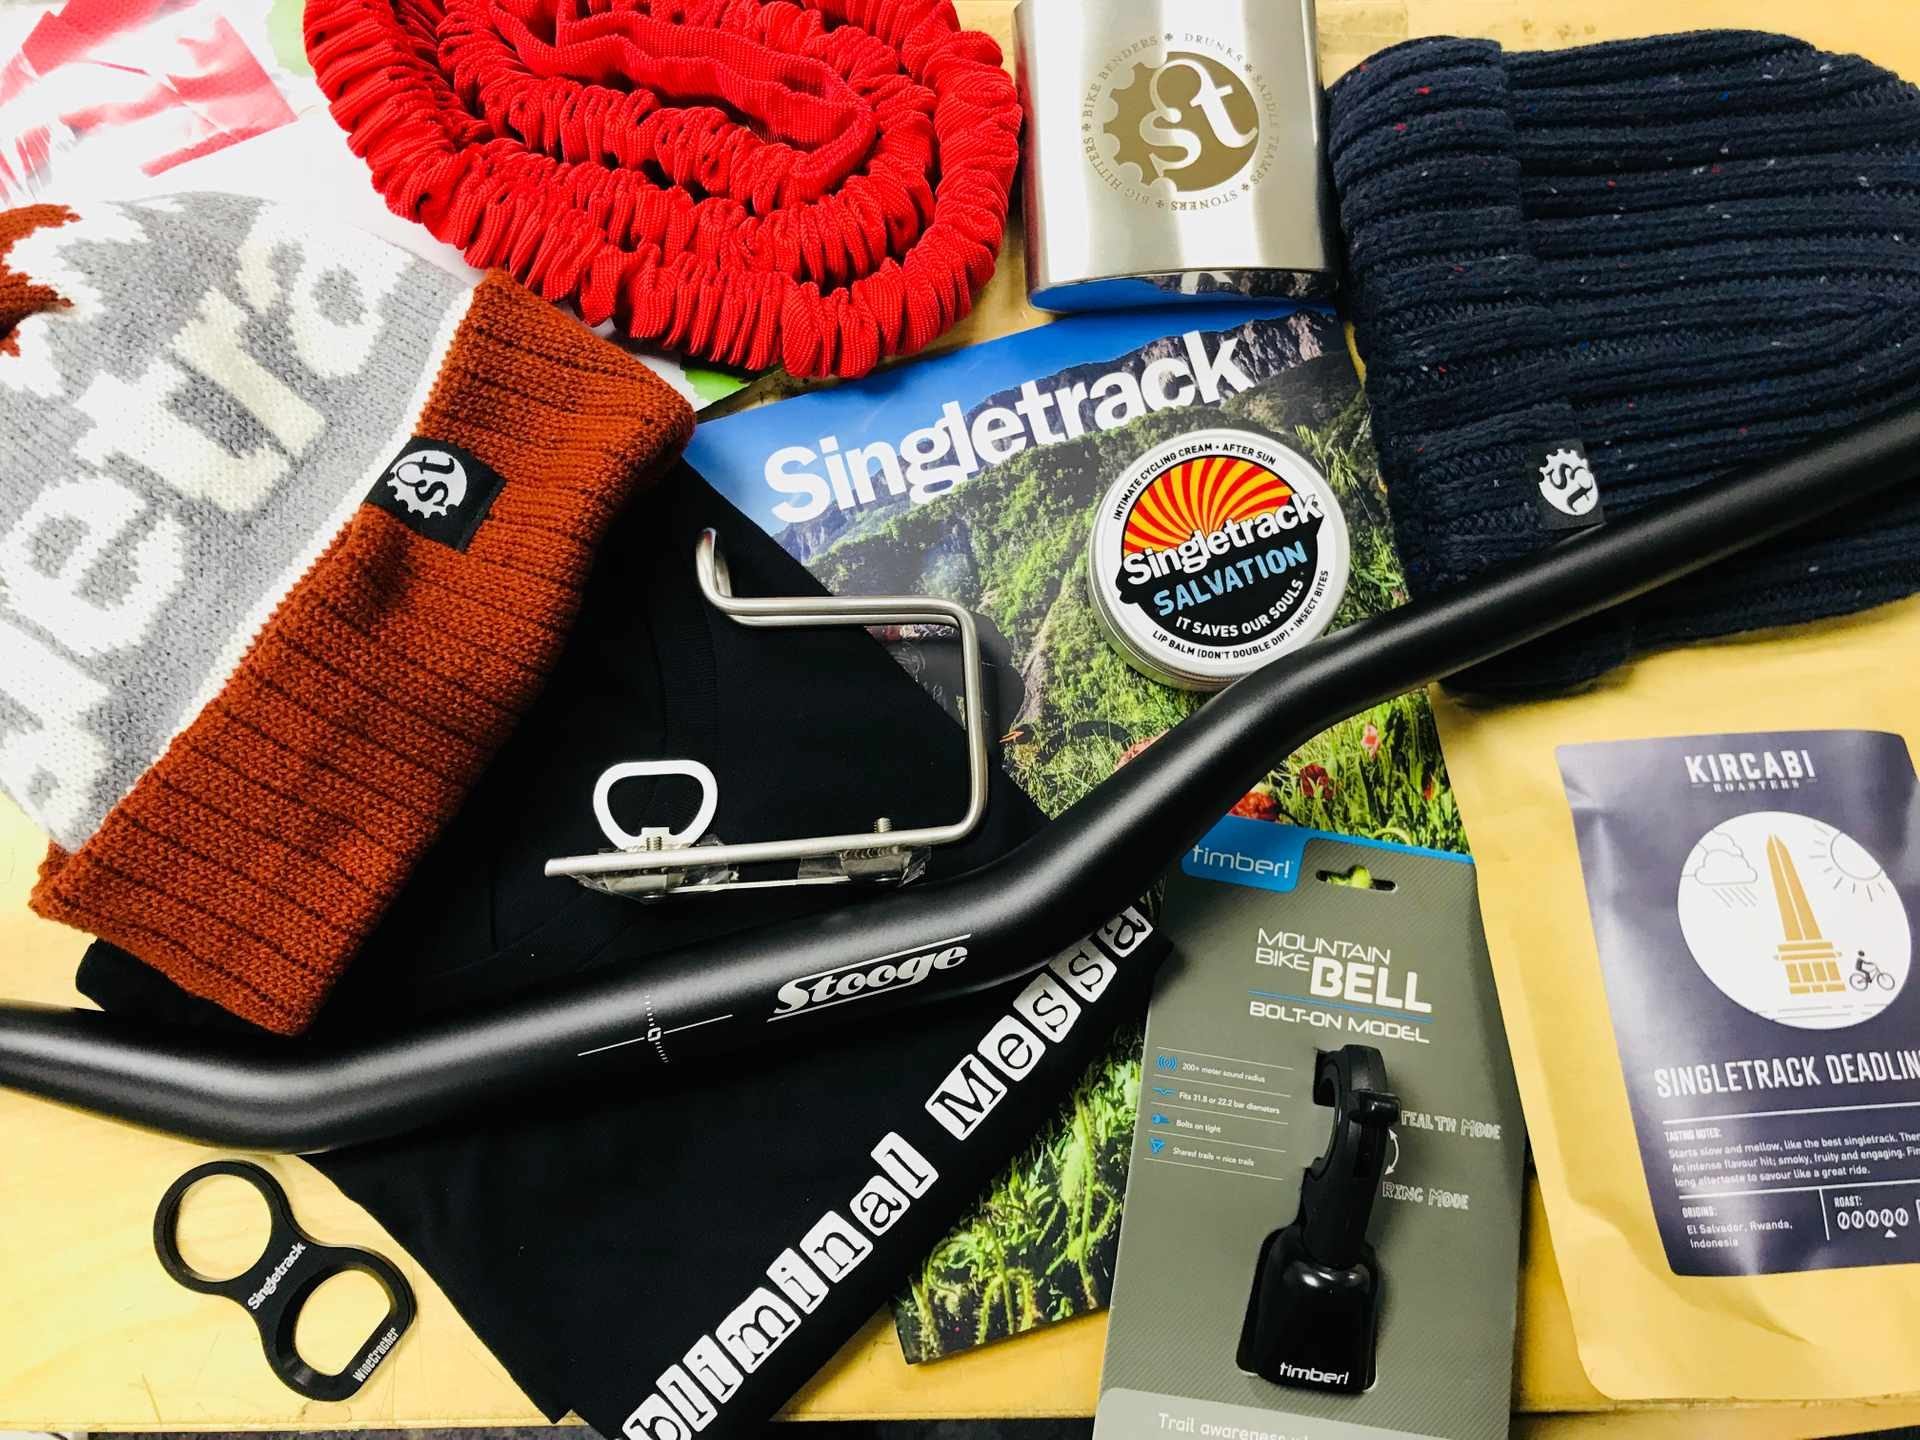 singletrack merch shop gifts for maontainbikers